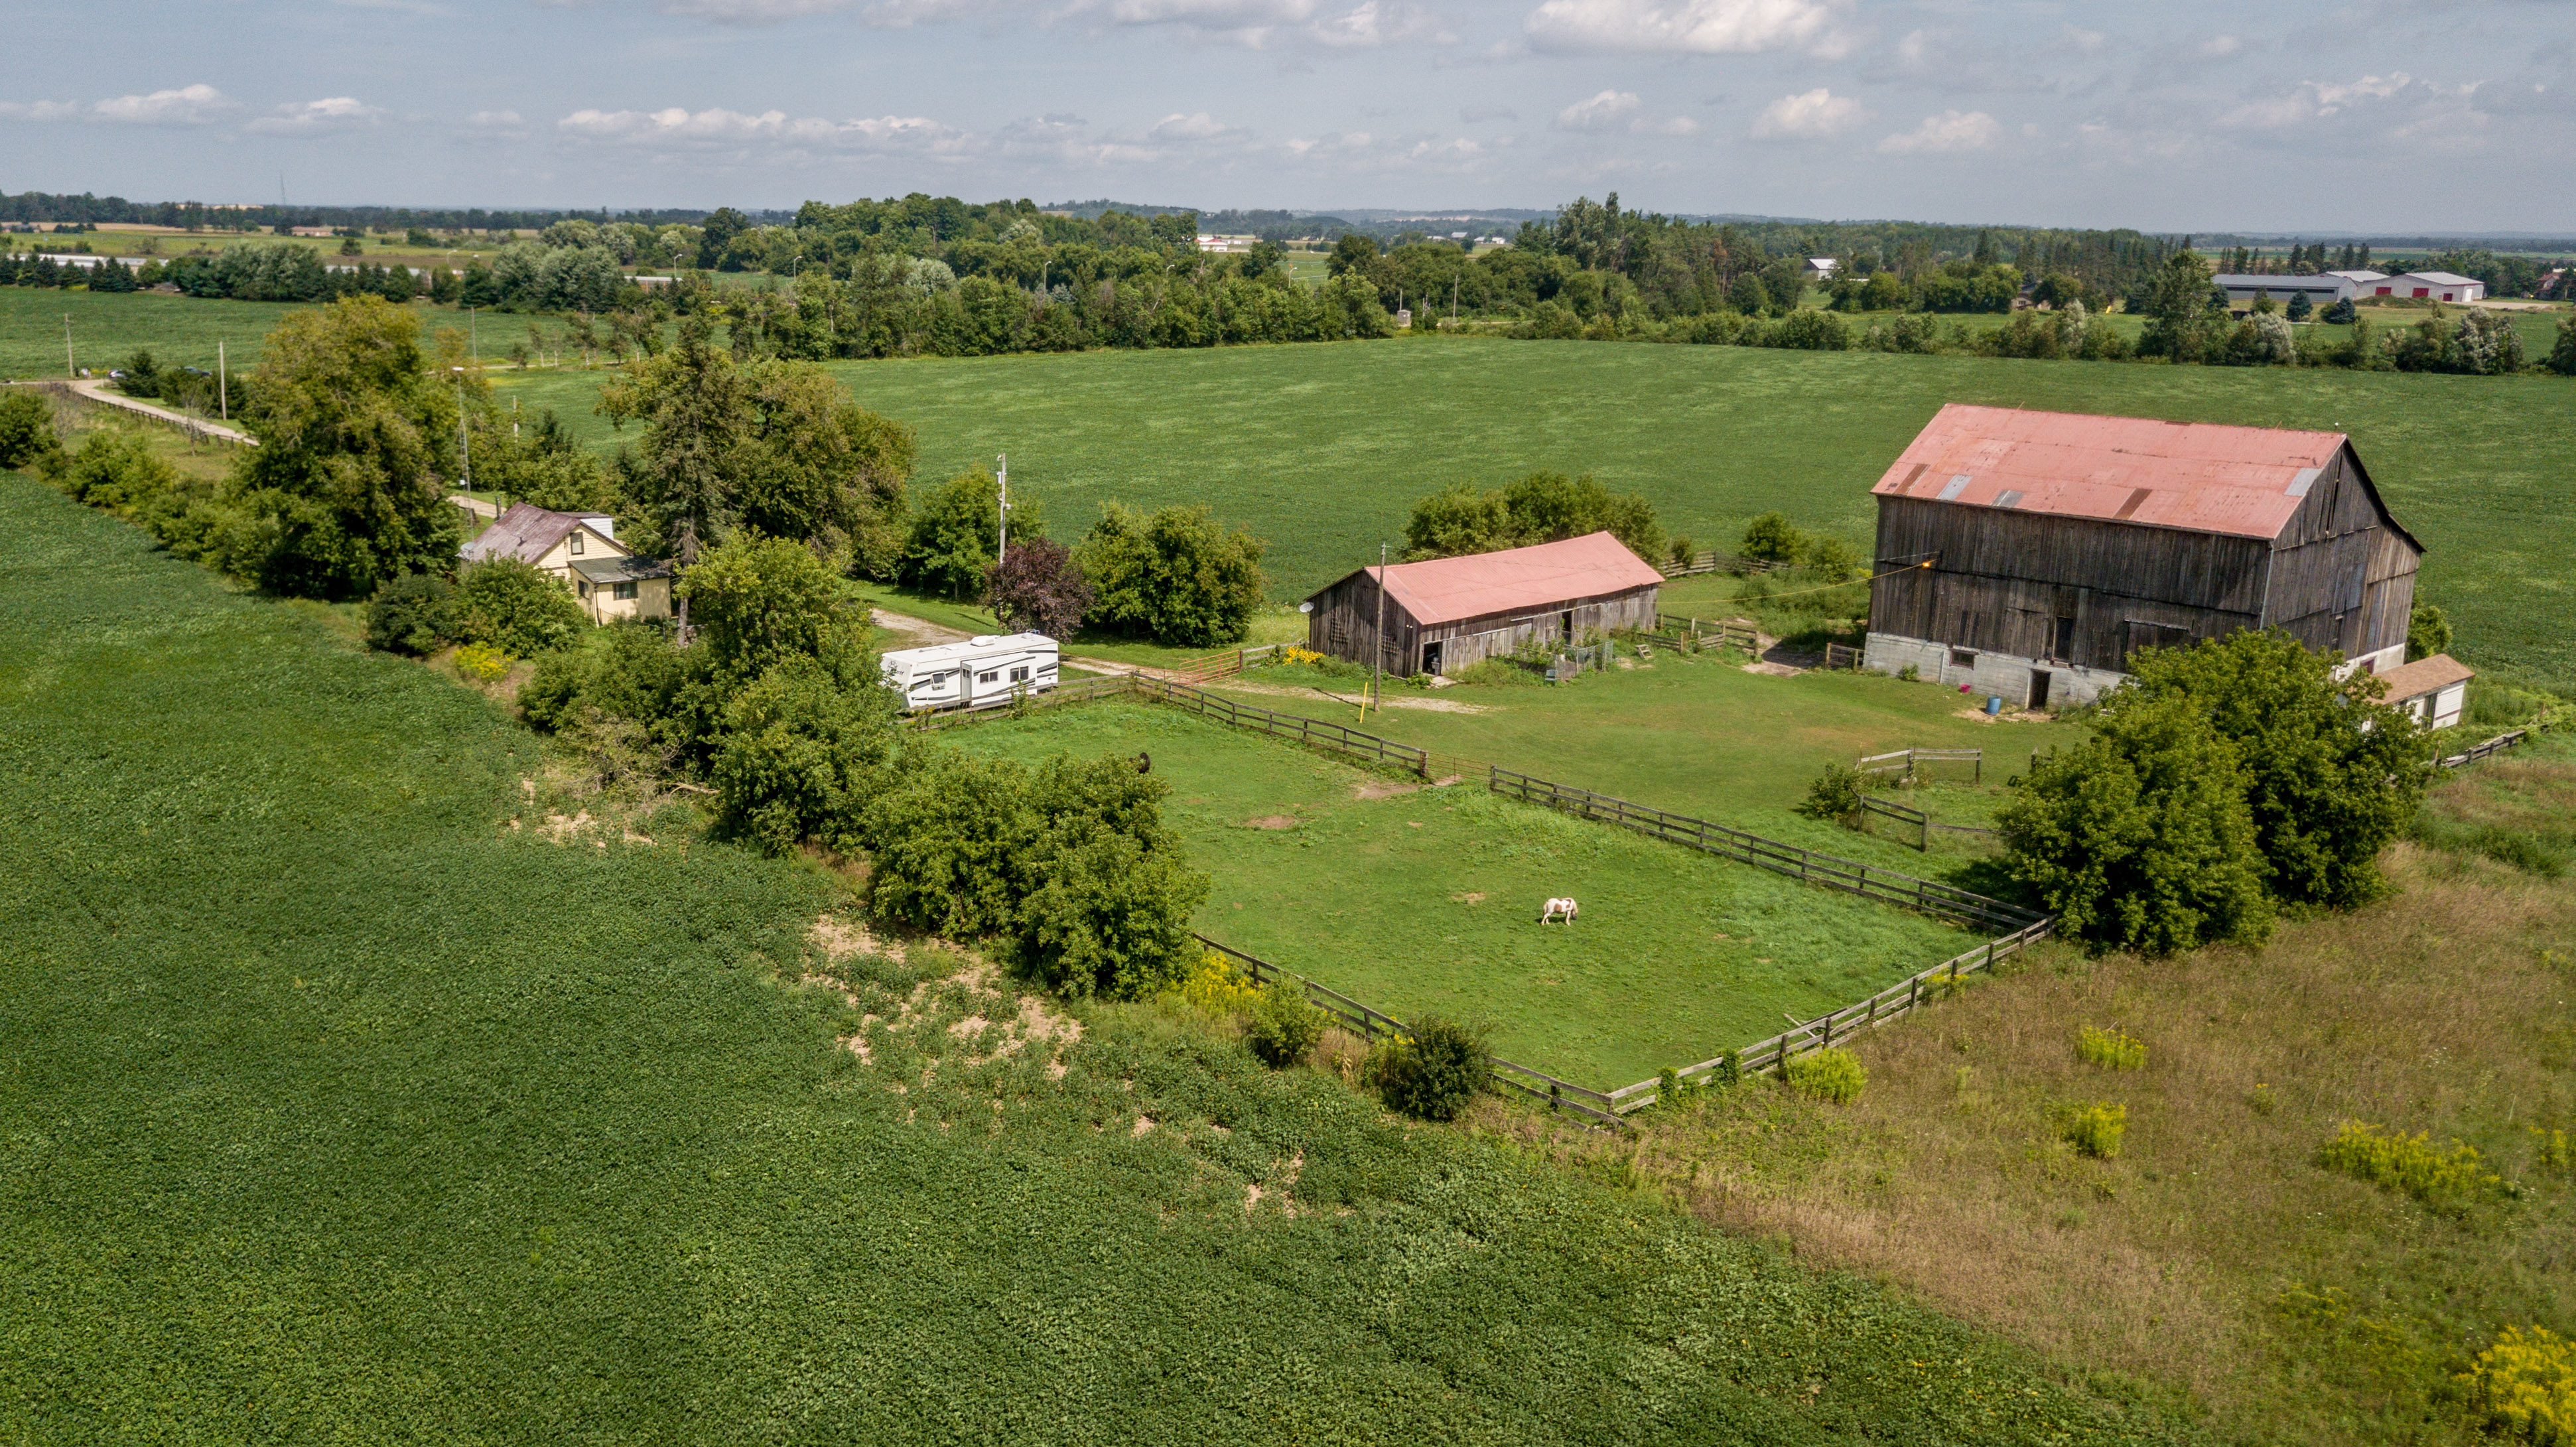 Fixer Upper Hobby Farm 2.5 acres, Barn,Stalls,Paddocks $529,000